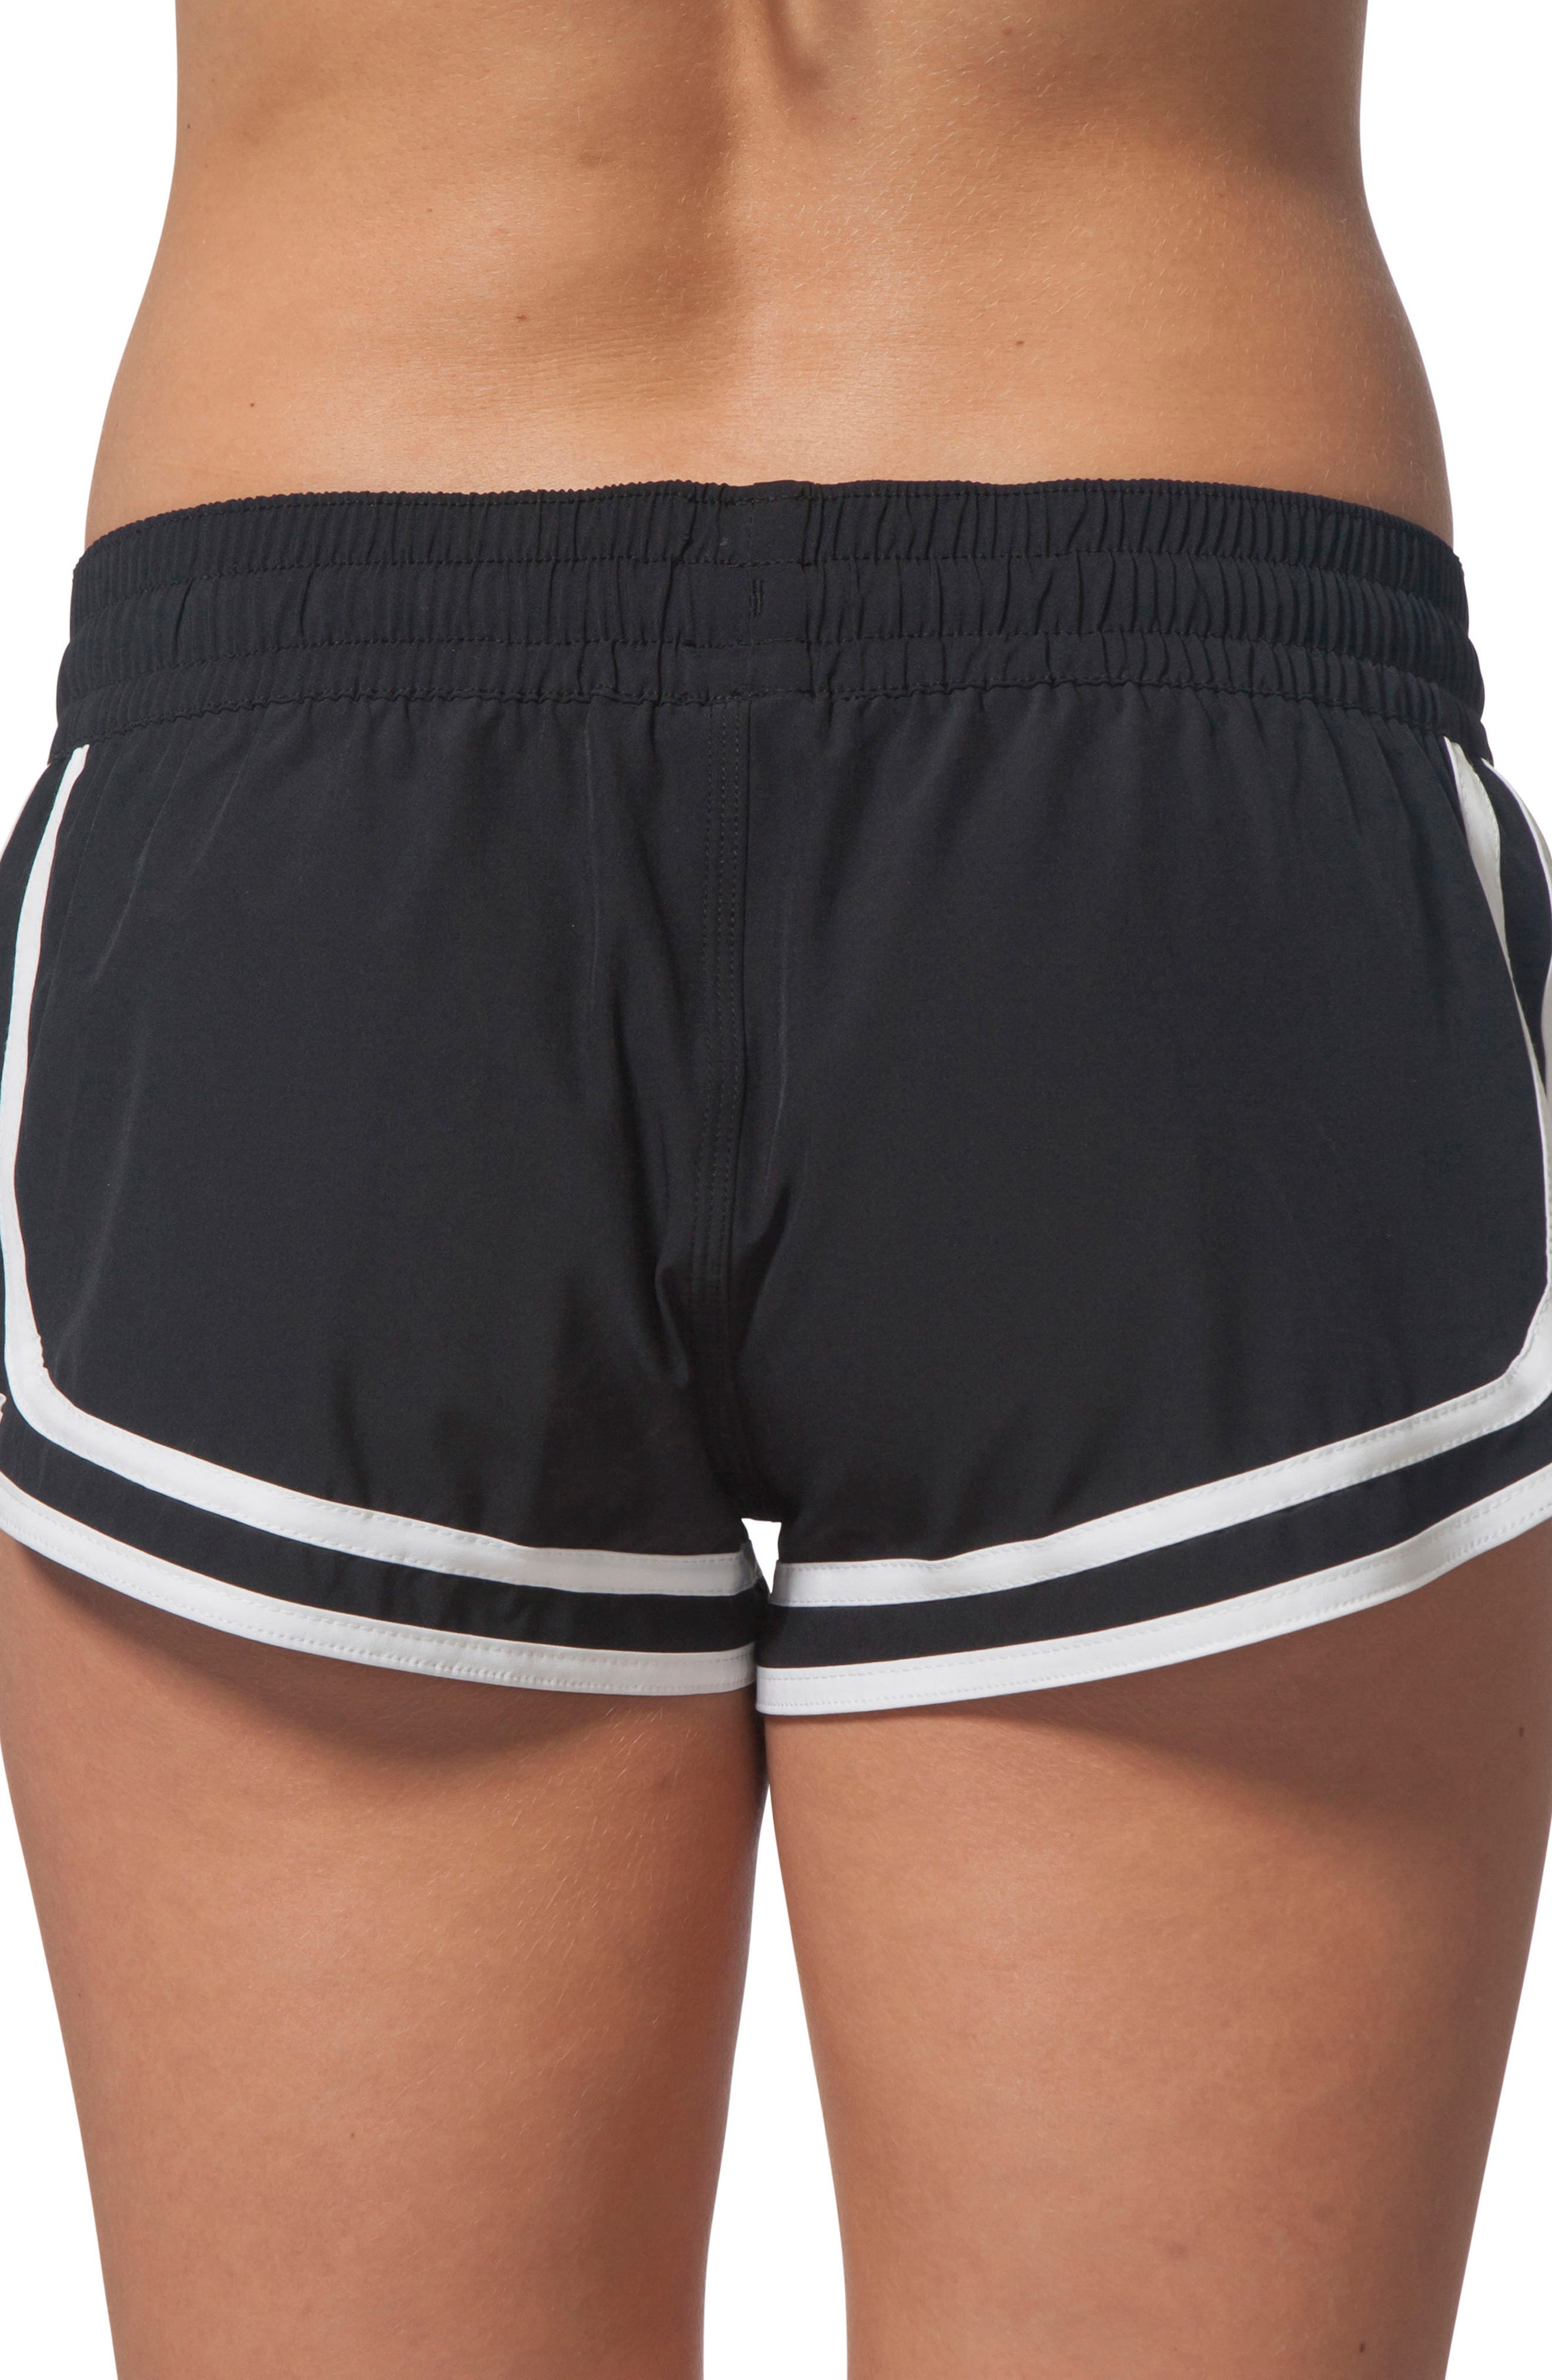 Search Vibes Board Shorts,                             Alternate thumbnail 2, color,                             BLACK